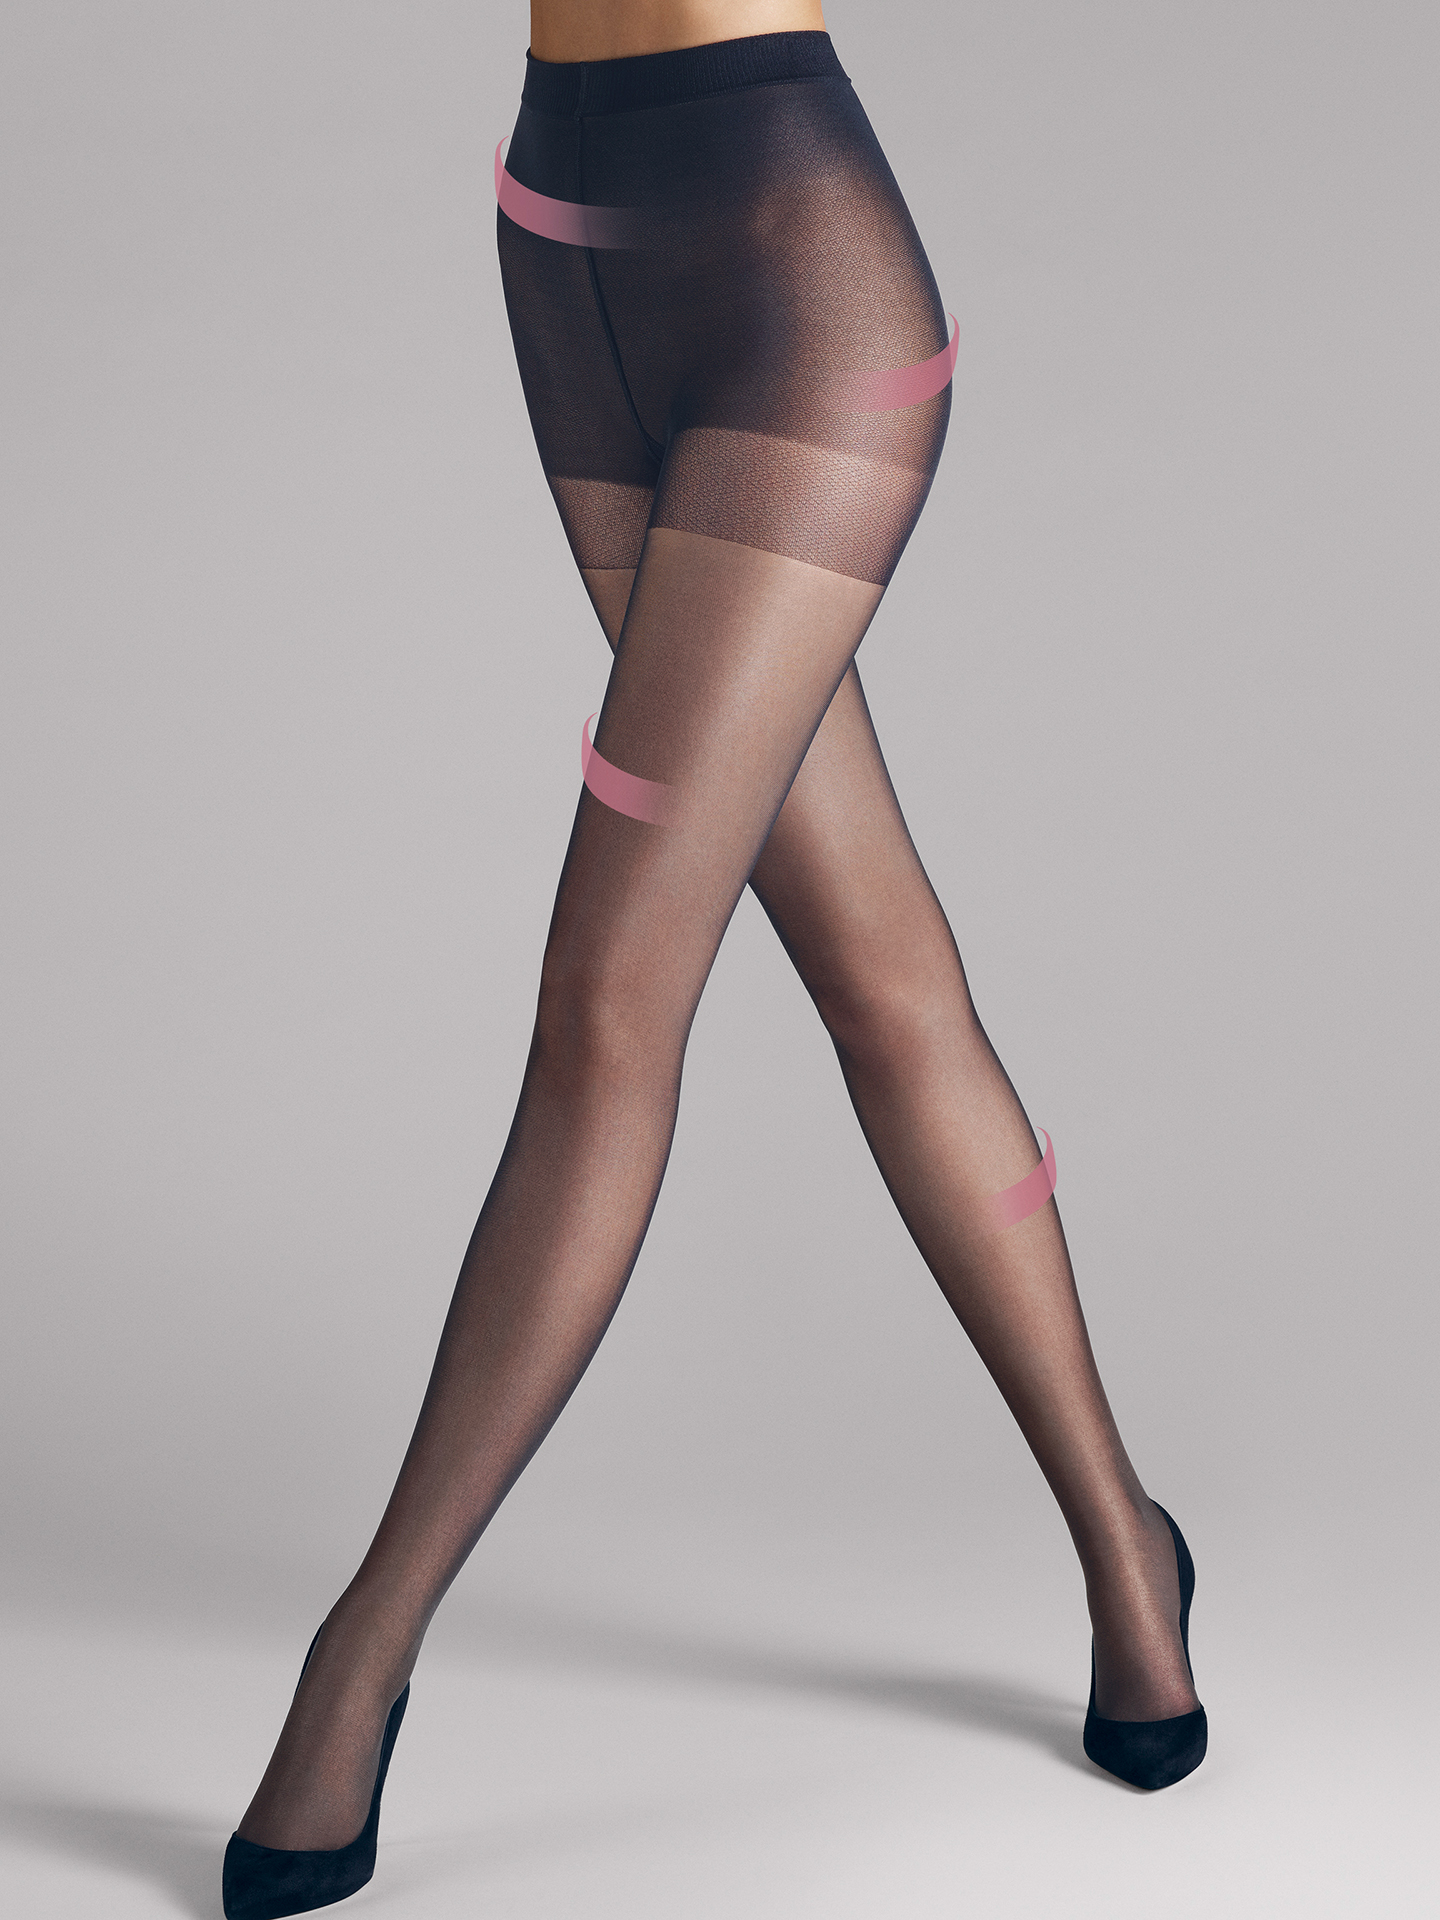 Wolford Apparel & Accessories > Clothing > Collant Miss W 30 leg support - 5280 - XS